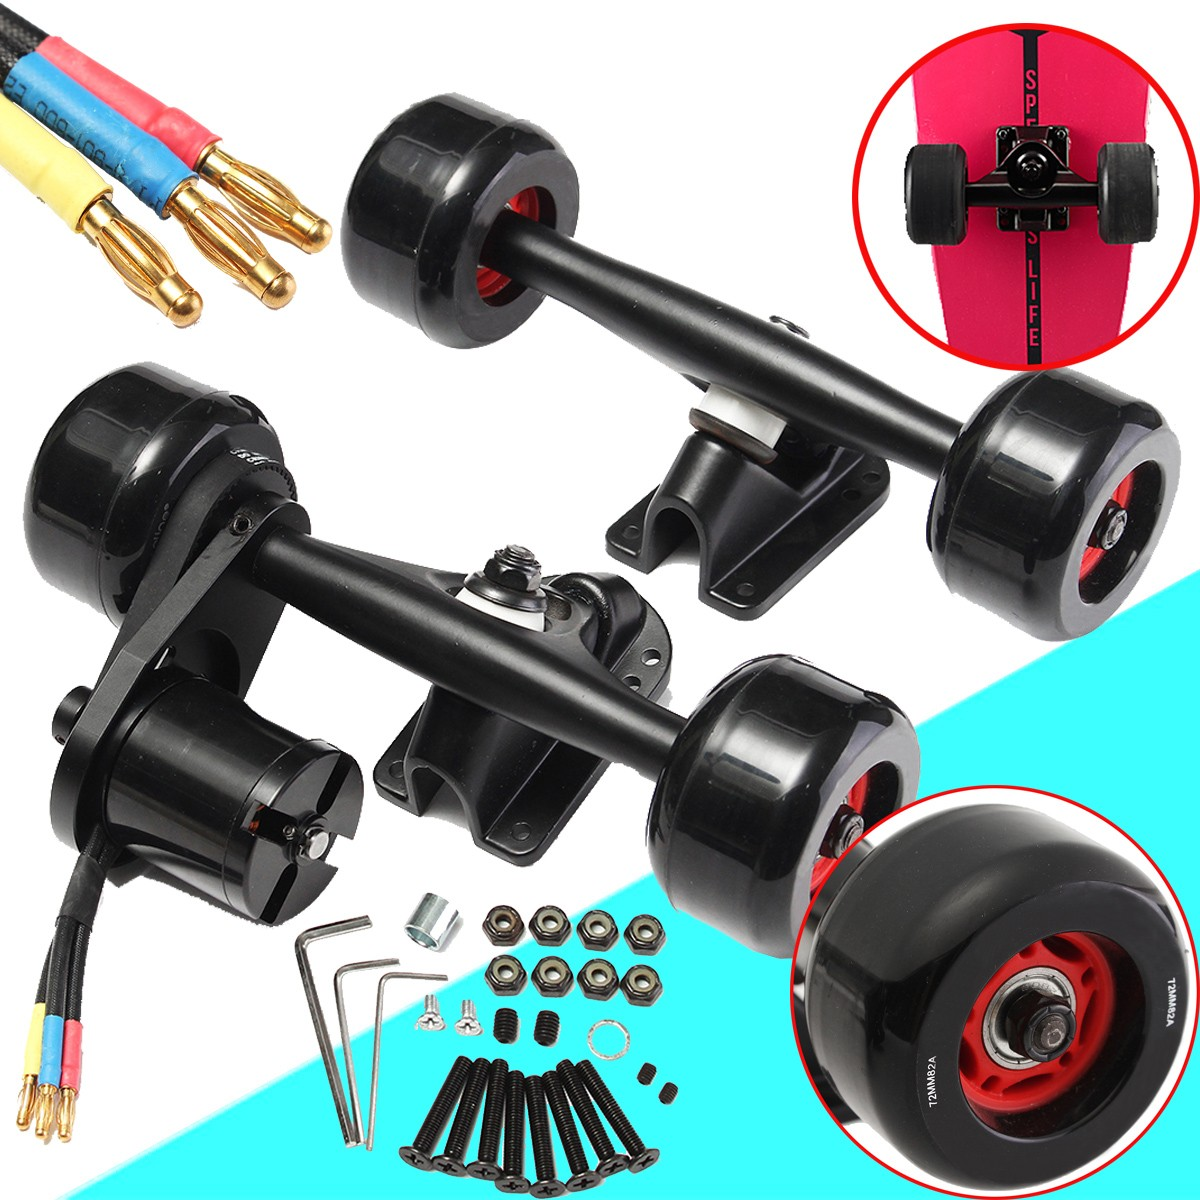 Electric Skateboard Truck Off Road Skateboard Belt Drive Truck 4 Wheel N5065 Electric Skateboard Parts Kit